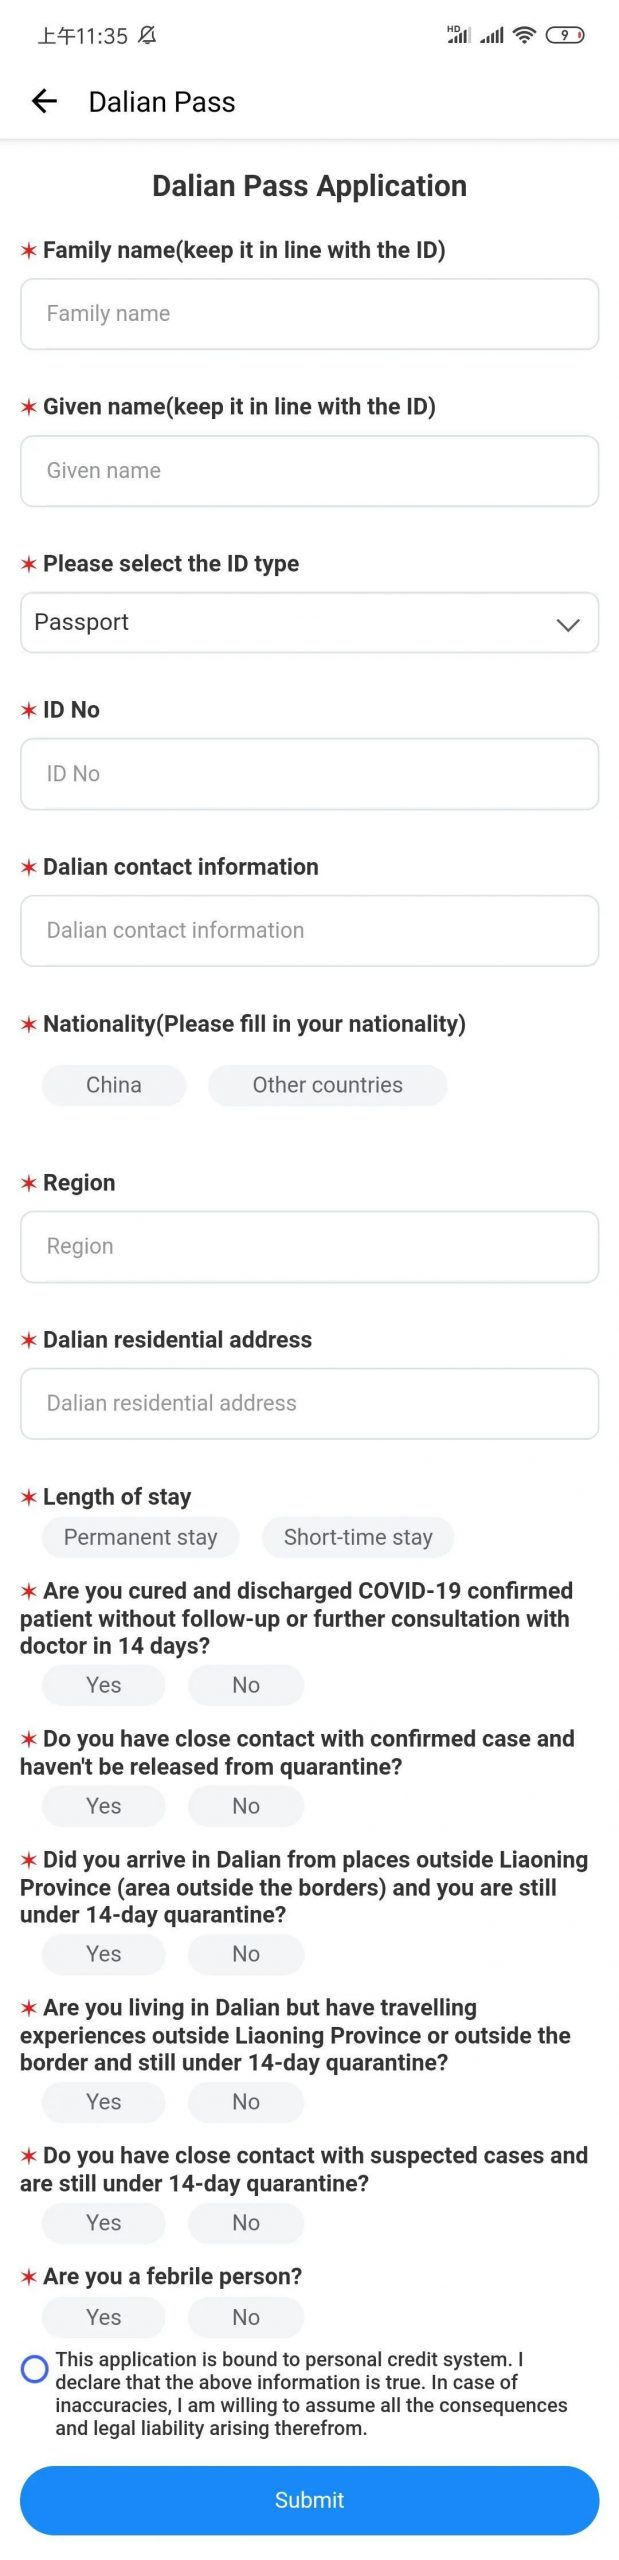 How To Get Your Green Health Code Almost Anywhere In China!